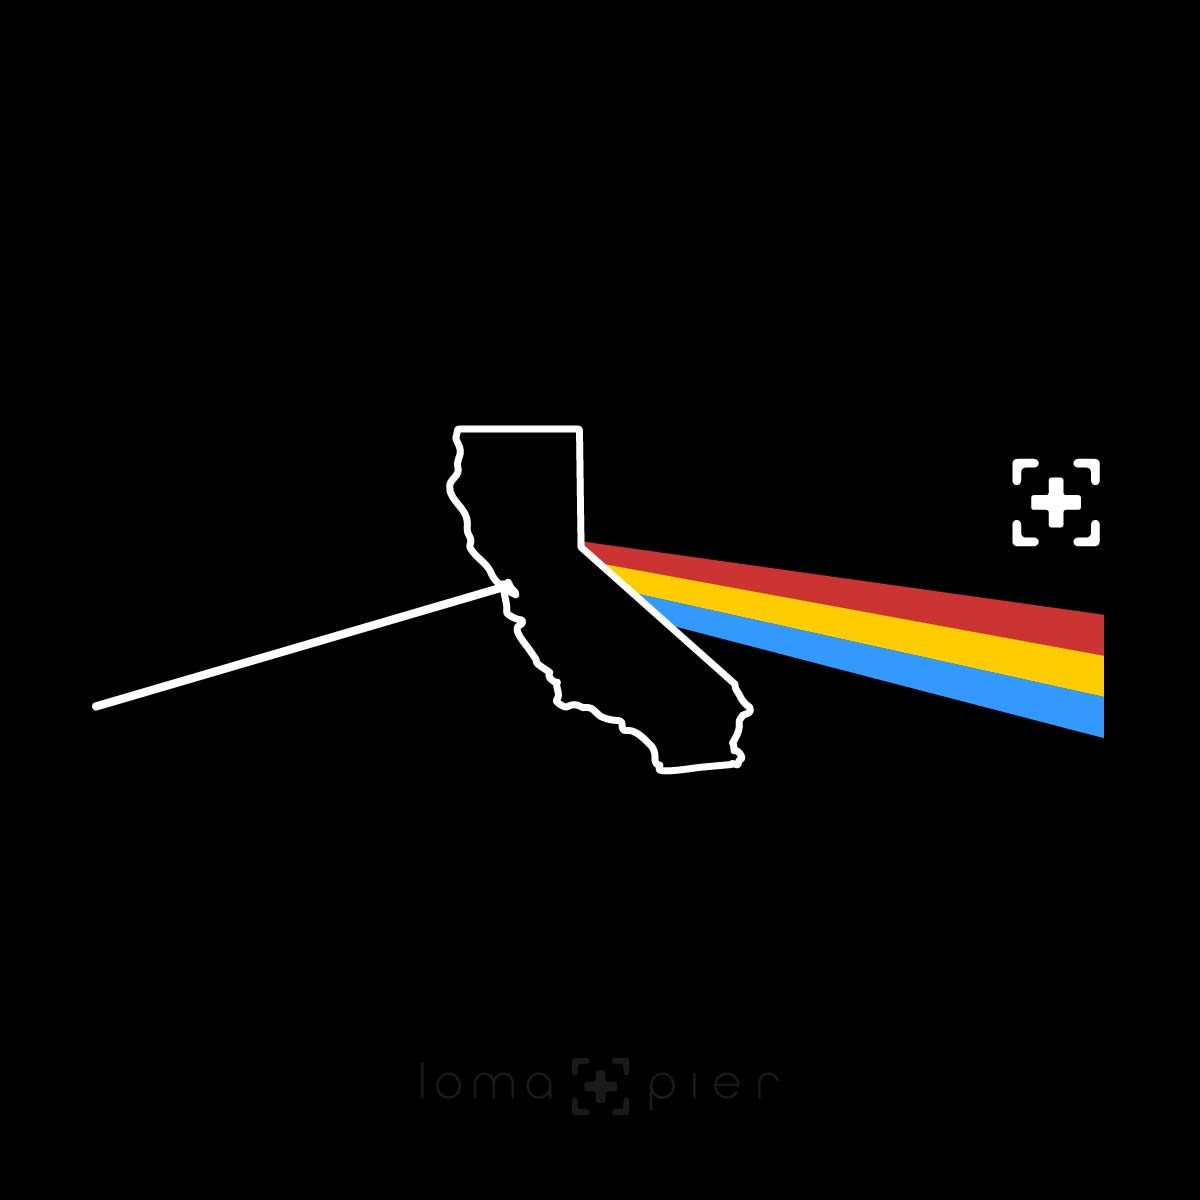 CALIFORNIA STATE PRISM album art design by loma+pier hat store